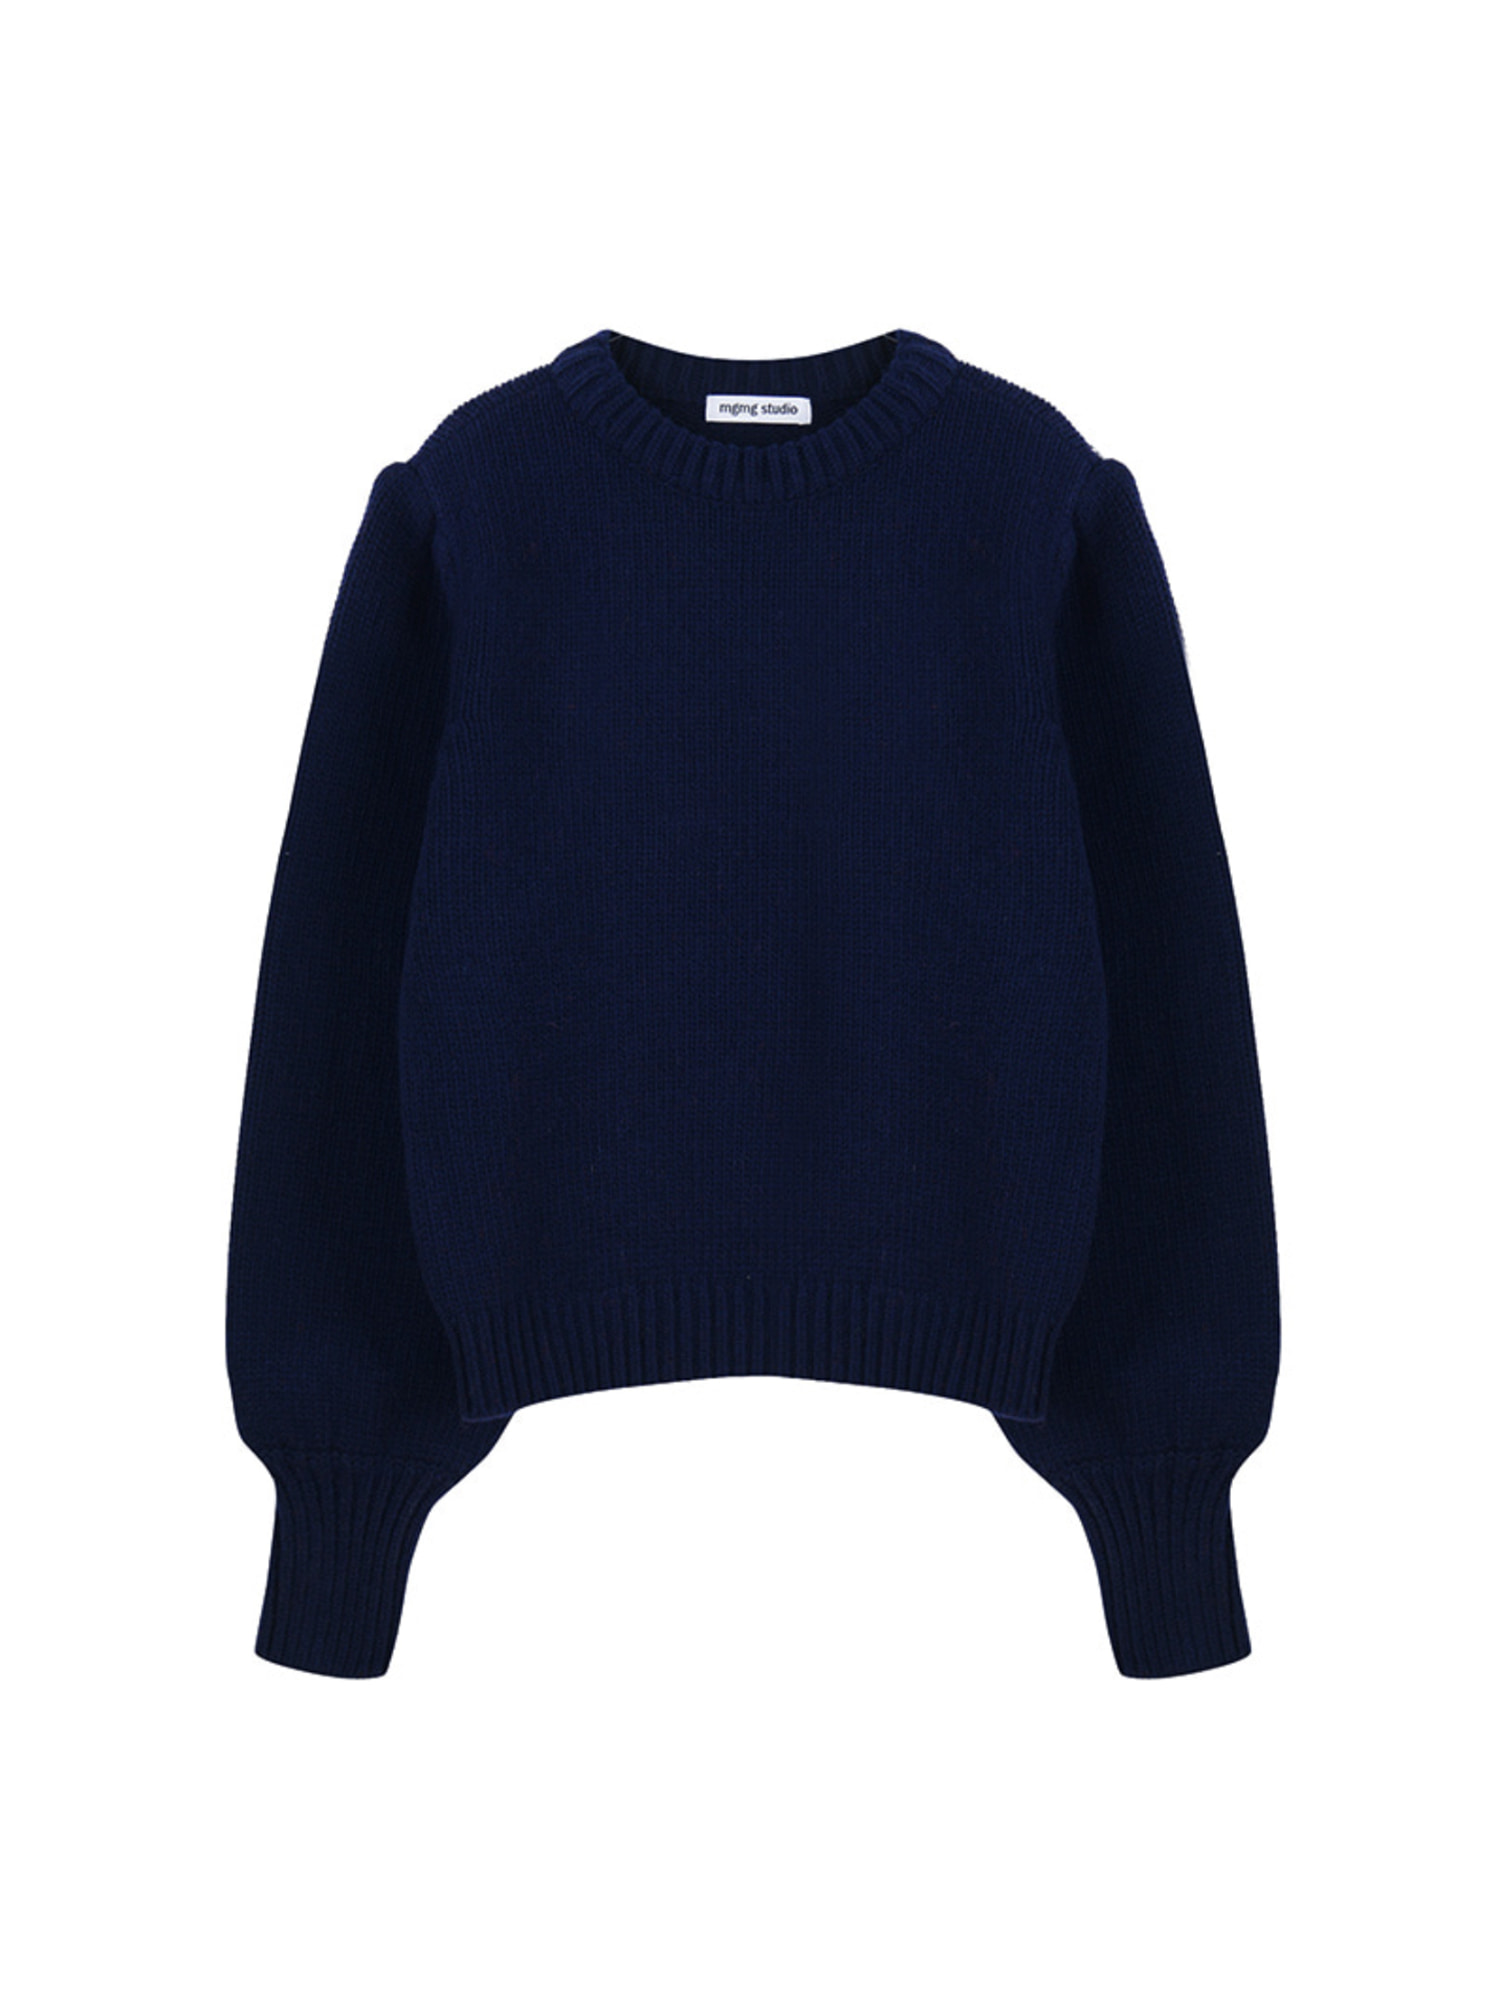 mgmg shirring knit_navy